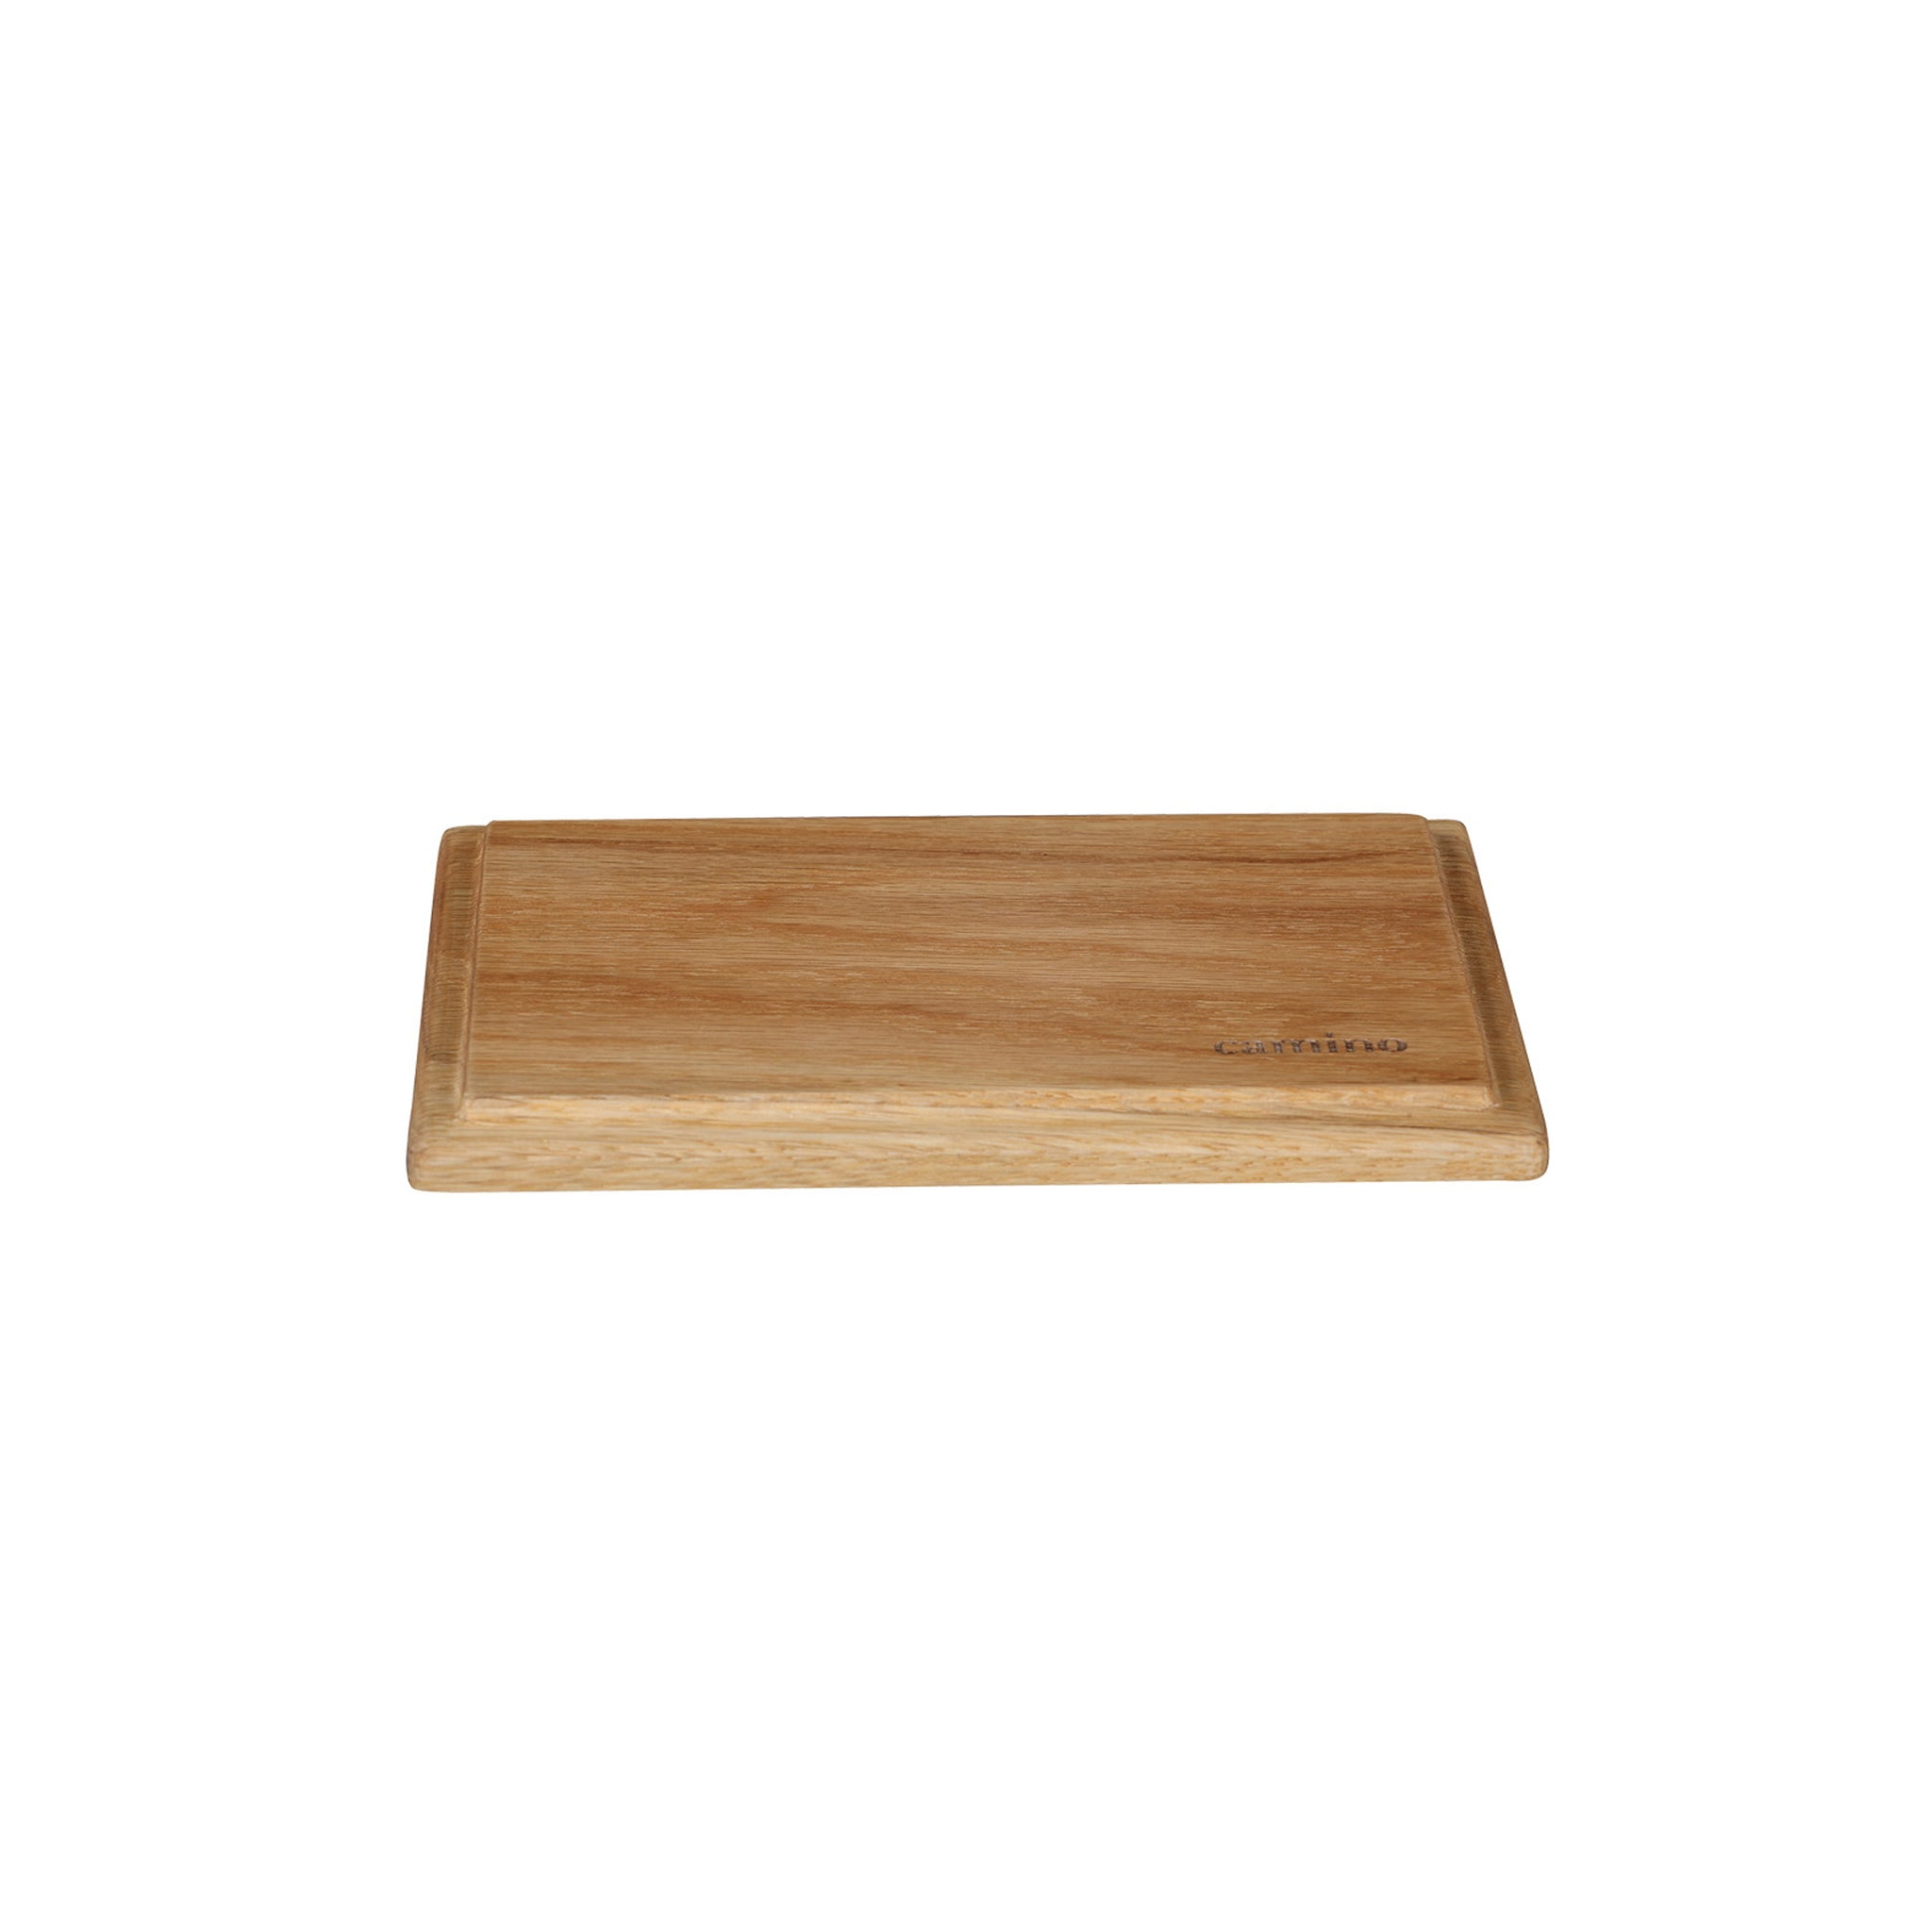 Jose 1A Serving Tray